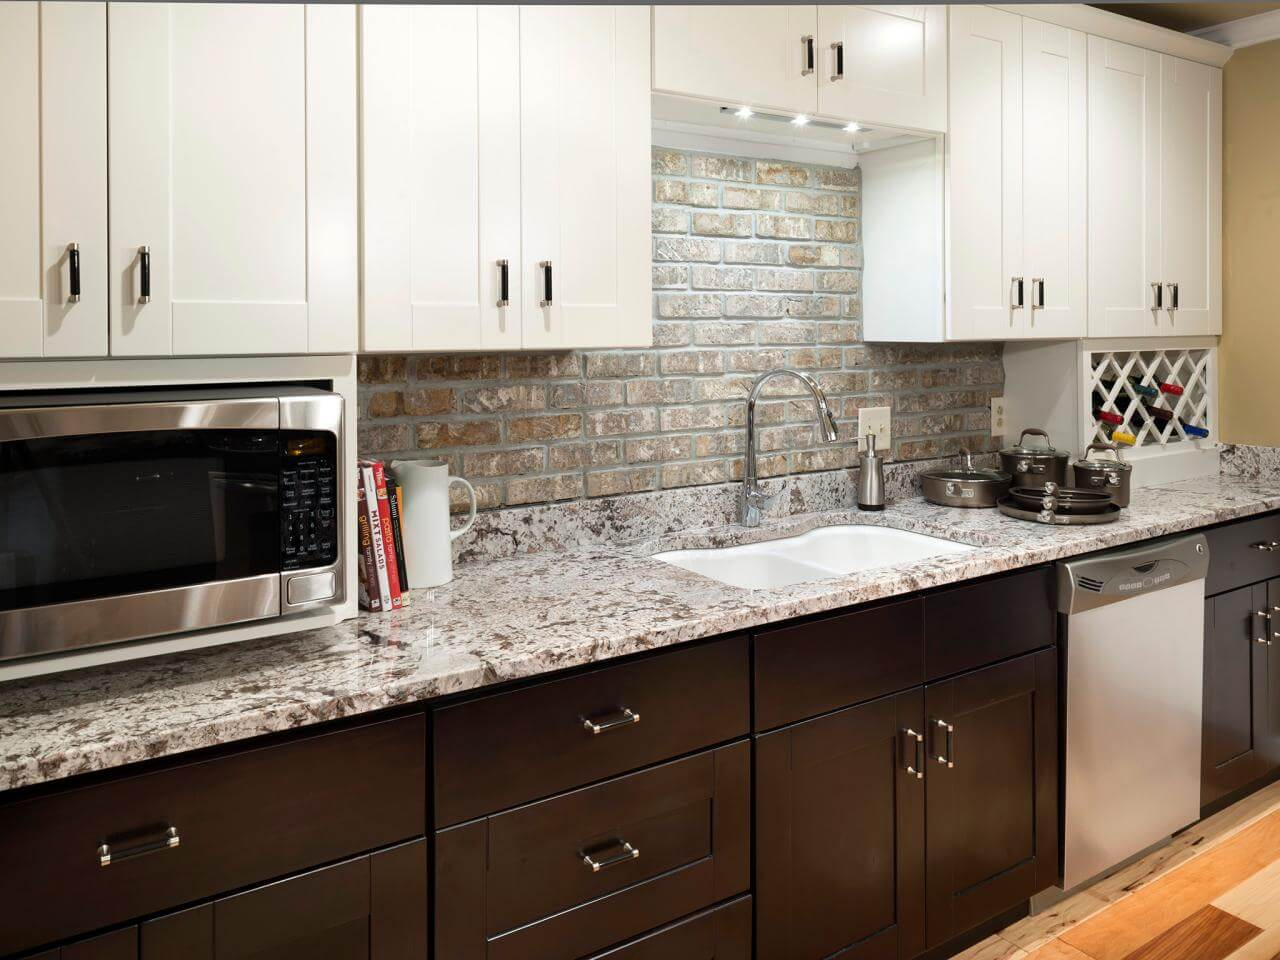 These countertops match perfectly with the kitchen cabinets